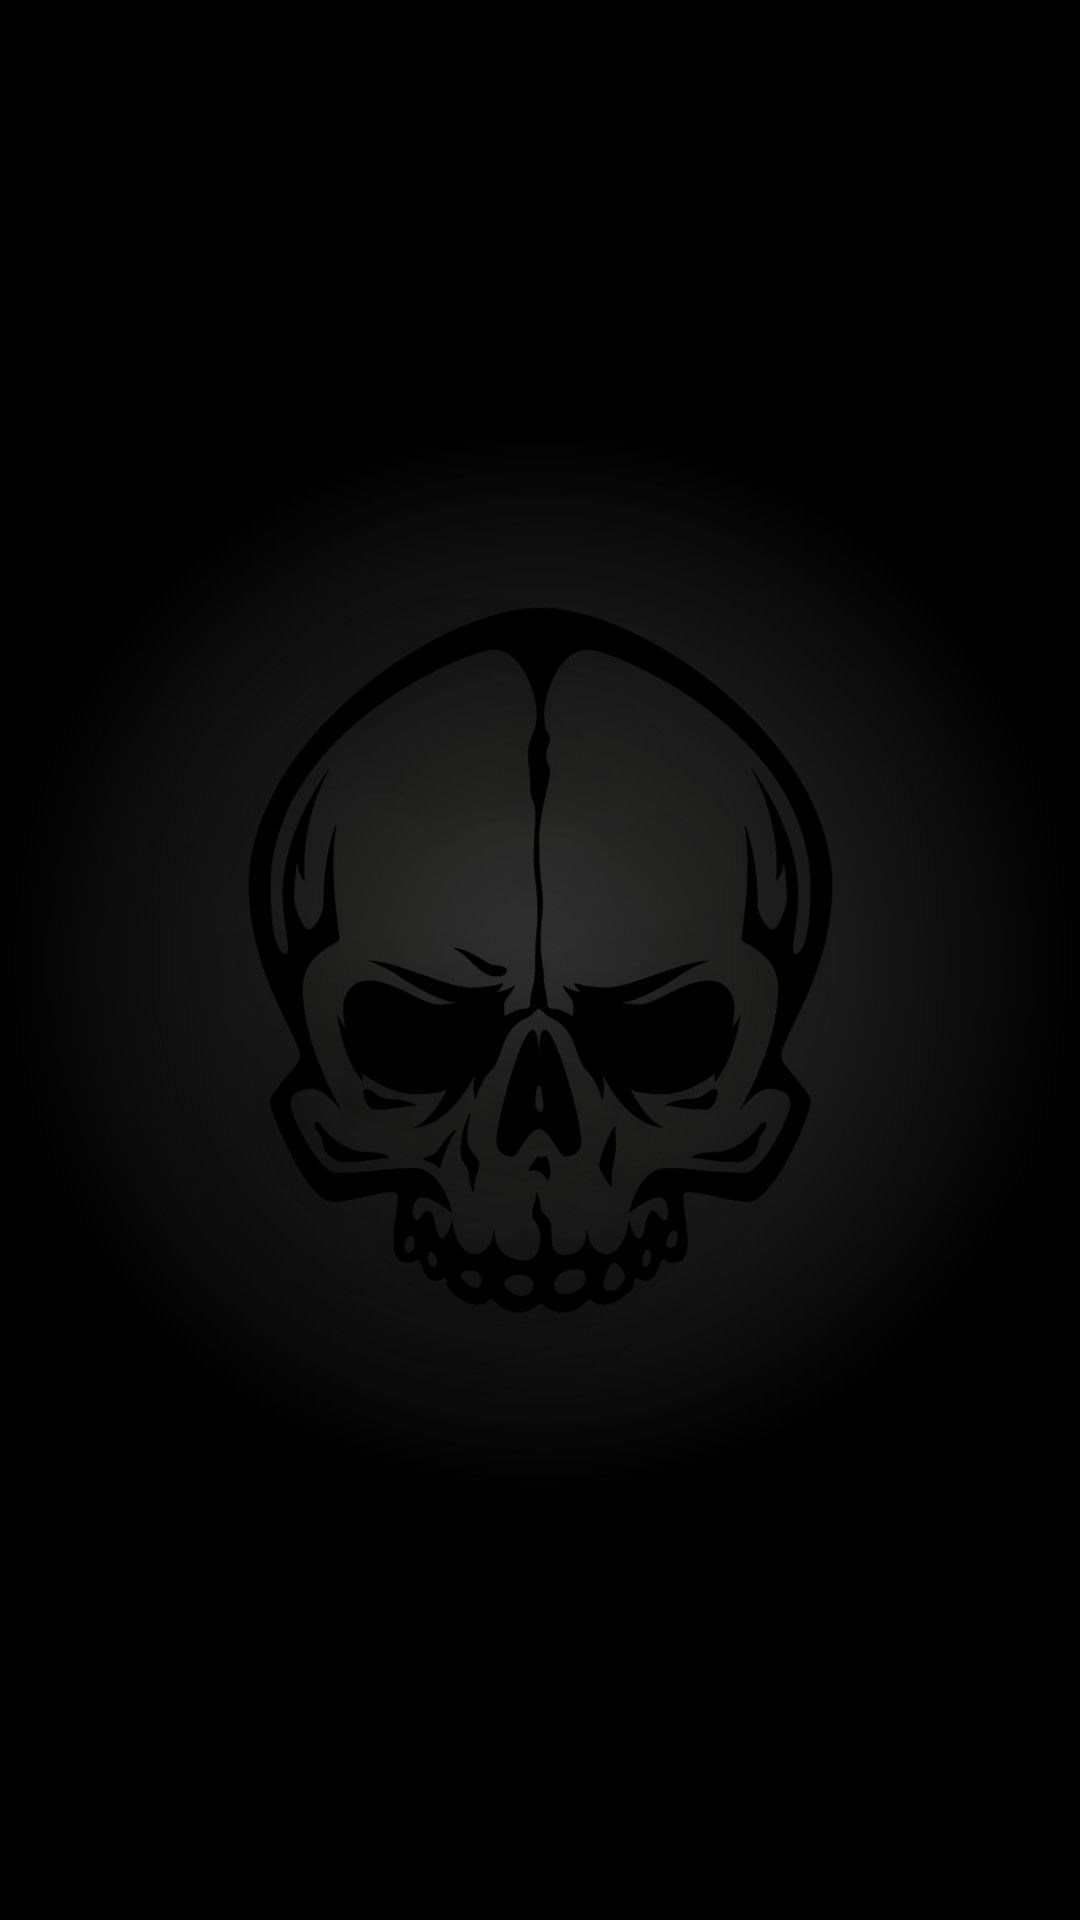 Skull Harley Davidson Background Picture Black Phone Wallpaper